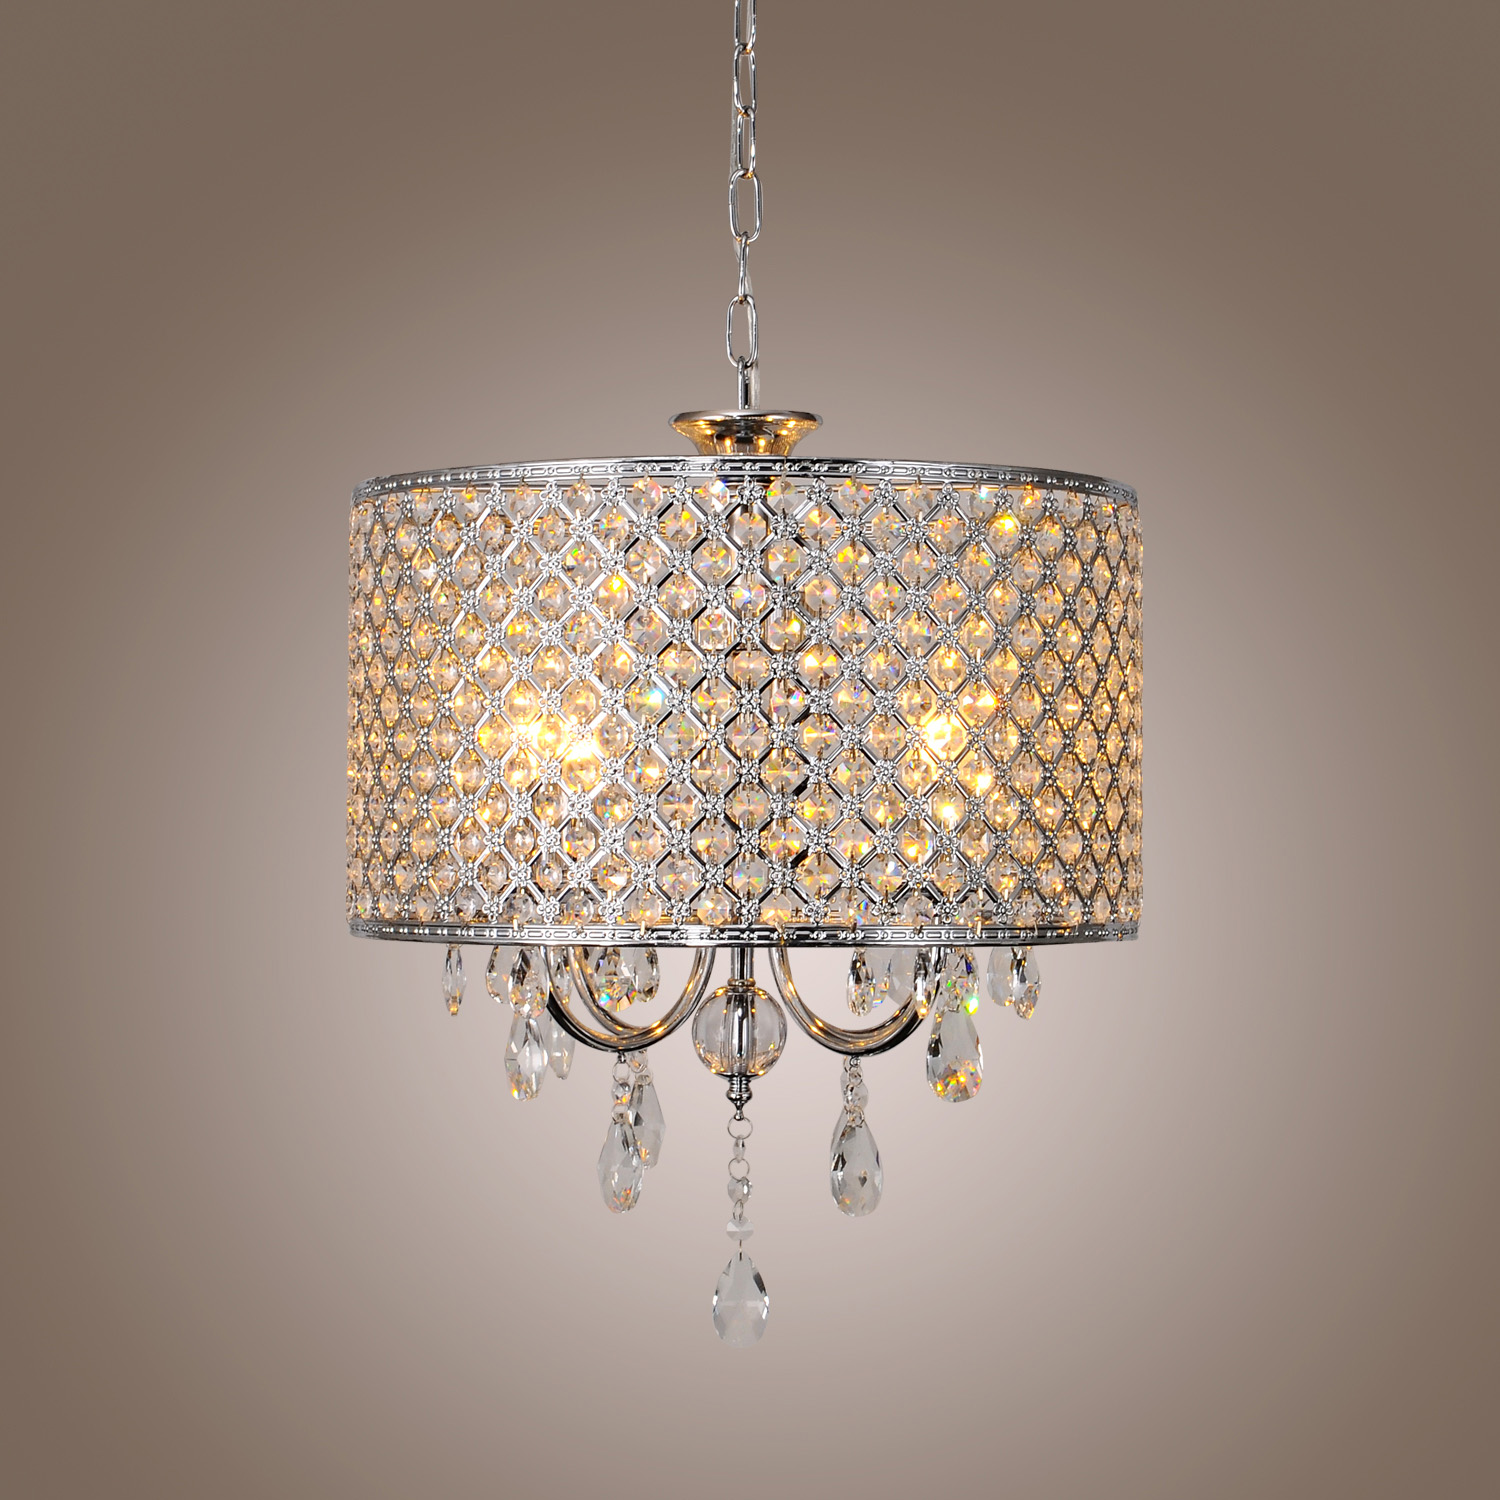 Modern pendant ceiling light crystal lighting dining for Ebay living room lights